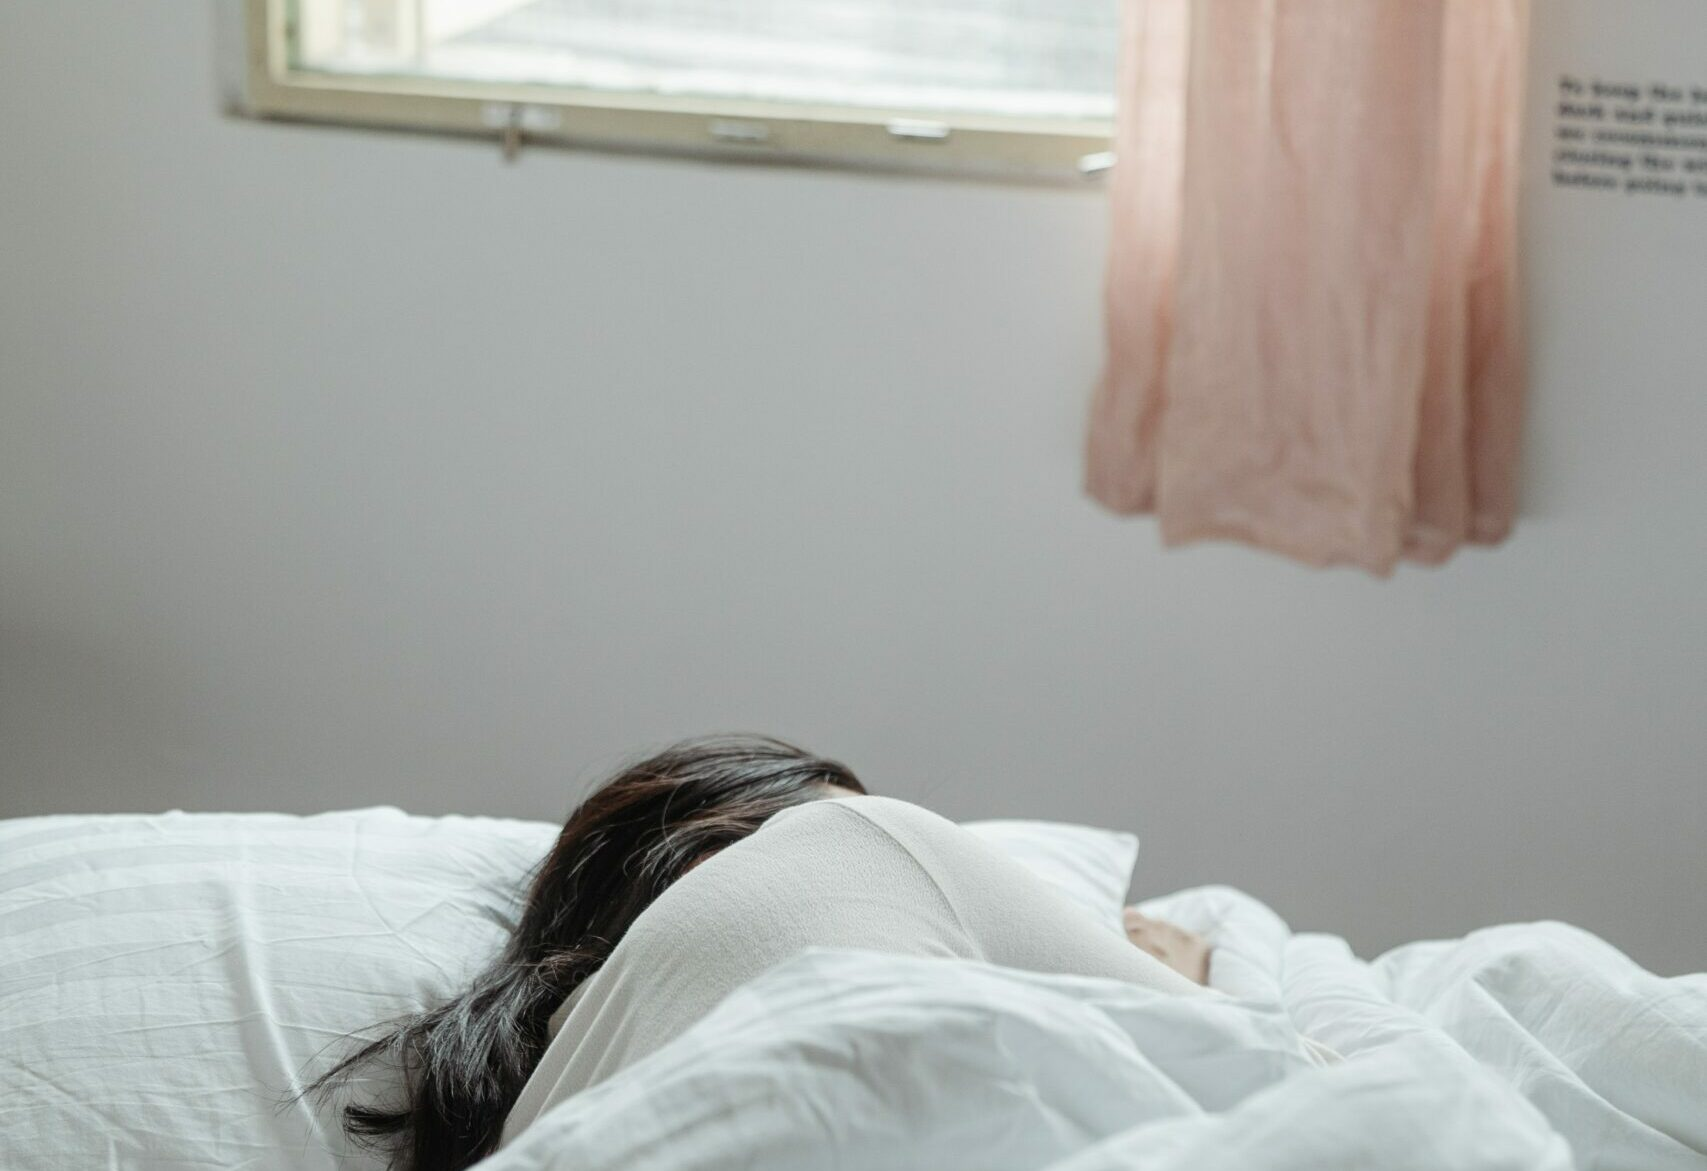 A woman sleeping on her side in a bed with light coming through a window - a way to treat insomnia naturally